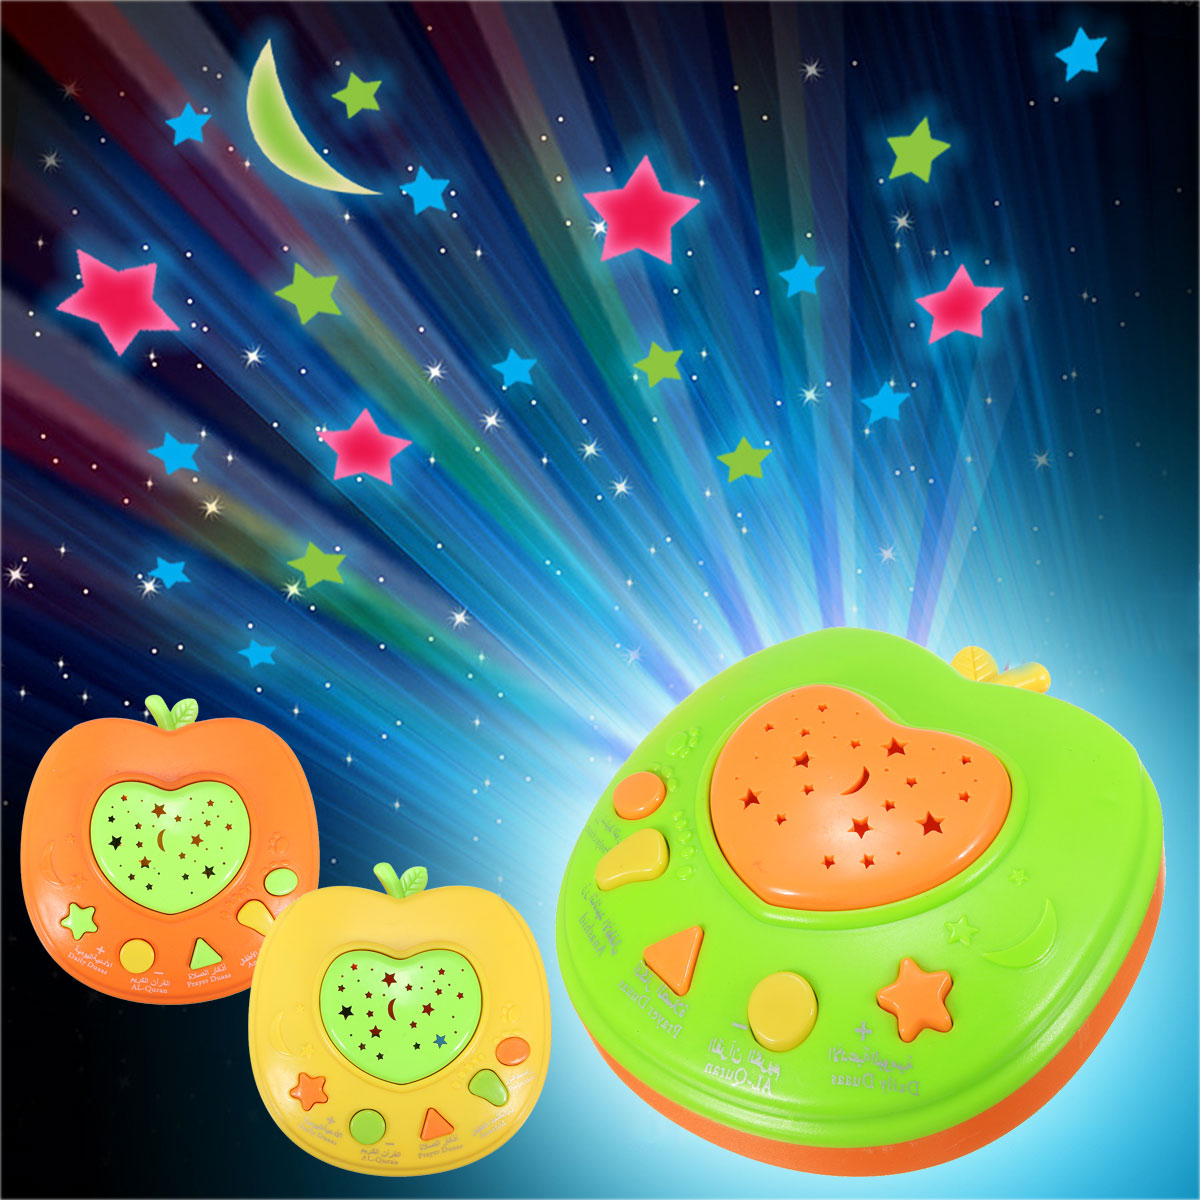 Quran Learning Machine Prayer Islamic Muslim Education Toy Gift Light Projective Learning Machine Educational Toys For Children